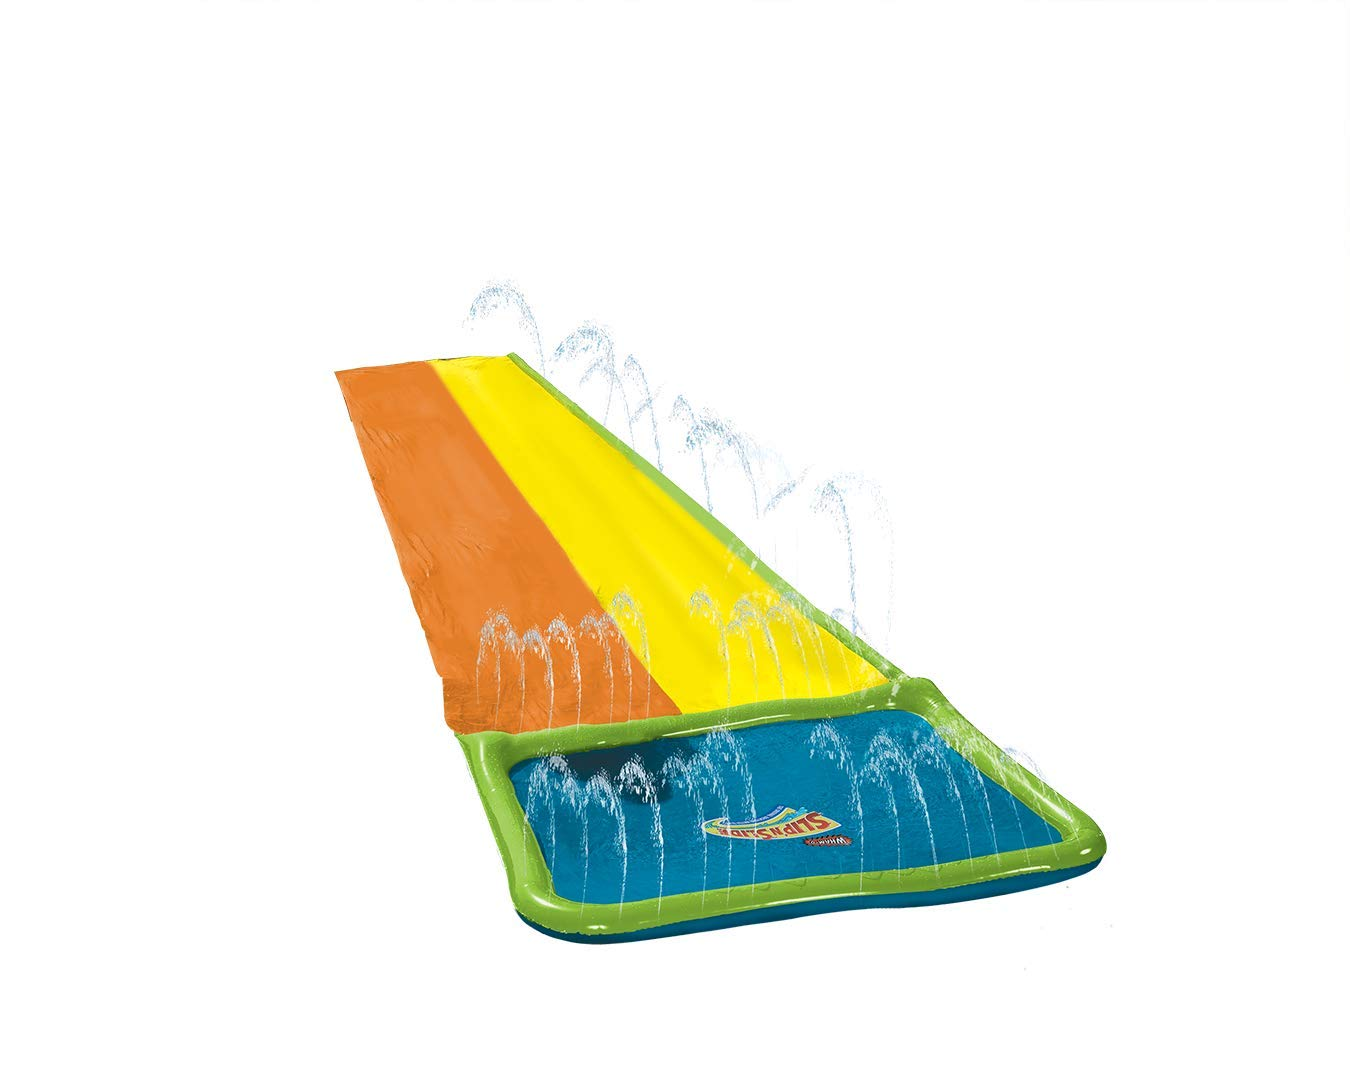 Wham-O 64120 Slip and Slide Double Wave Rider with Boogies by Wham-O